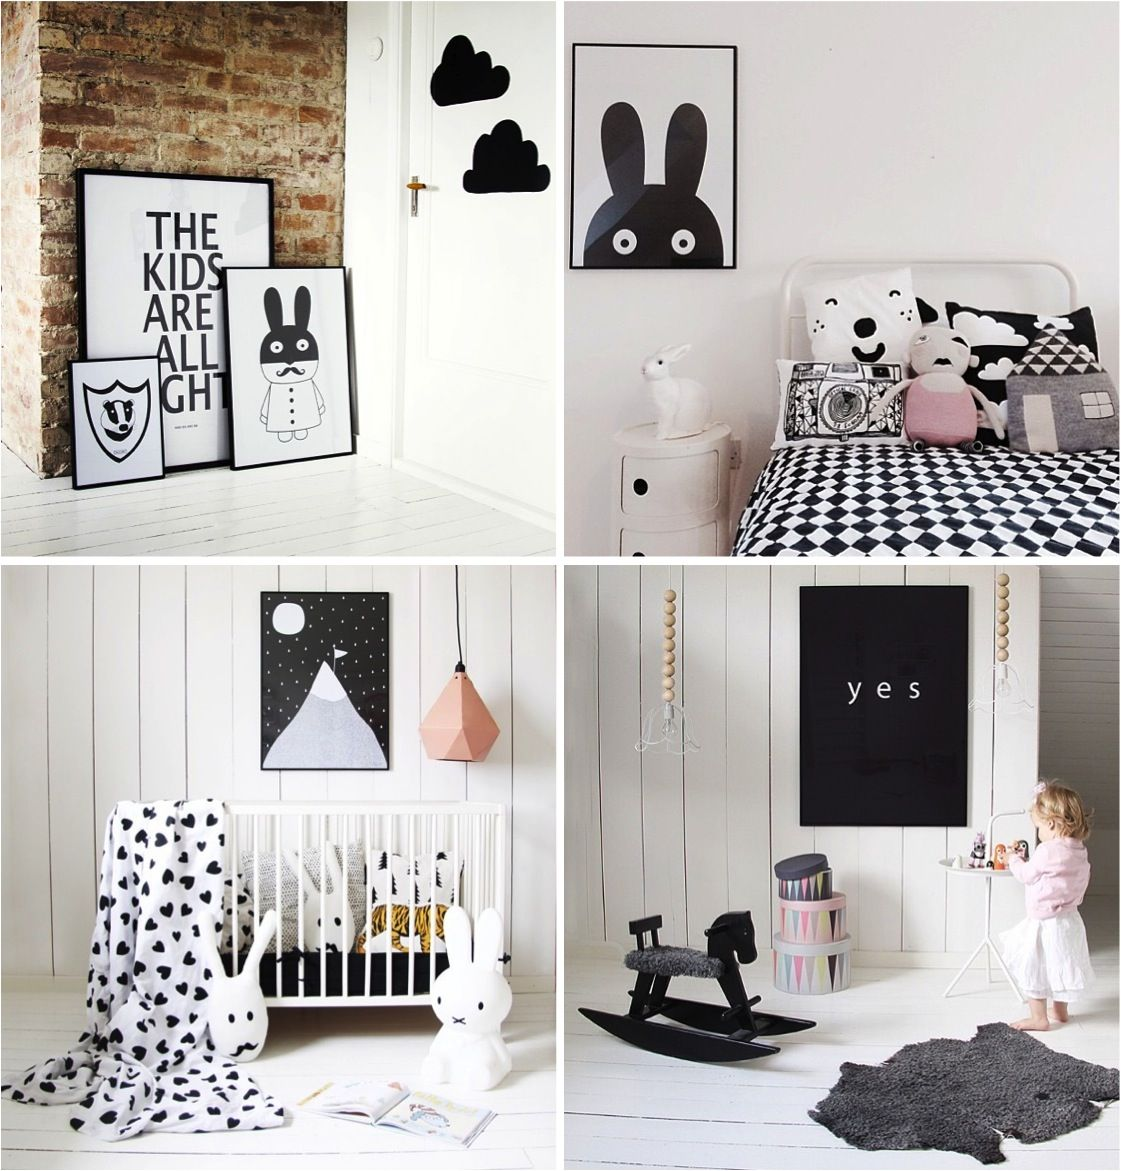 Best Ebabee Likes Playful Black And White Posters For Kids Bedrooms 400 x 300